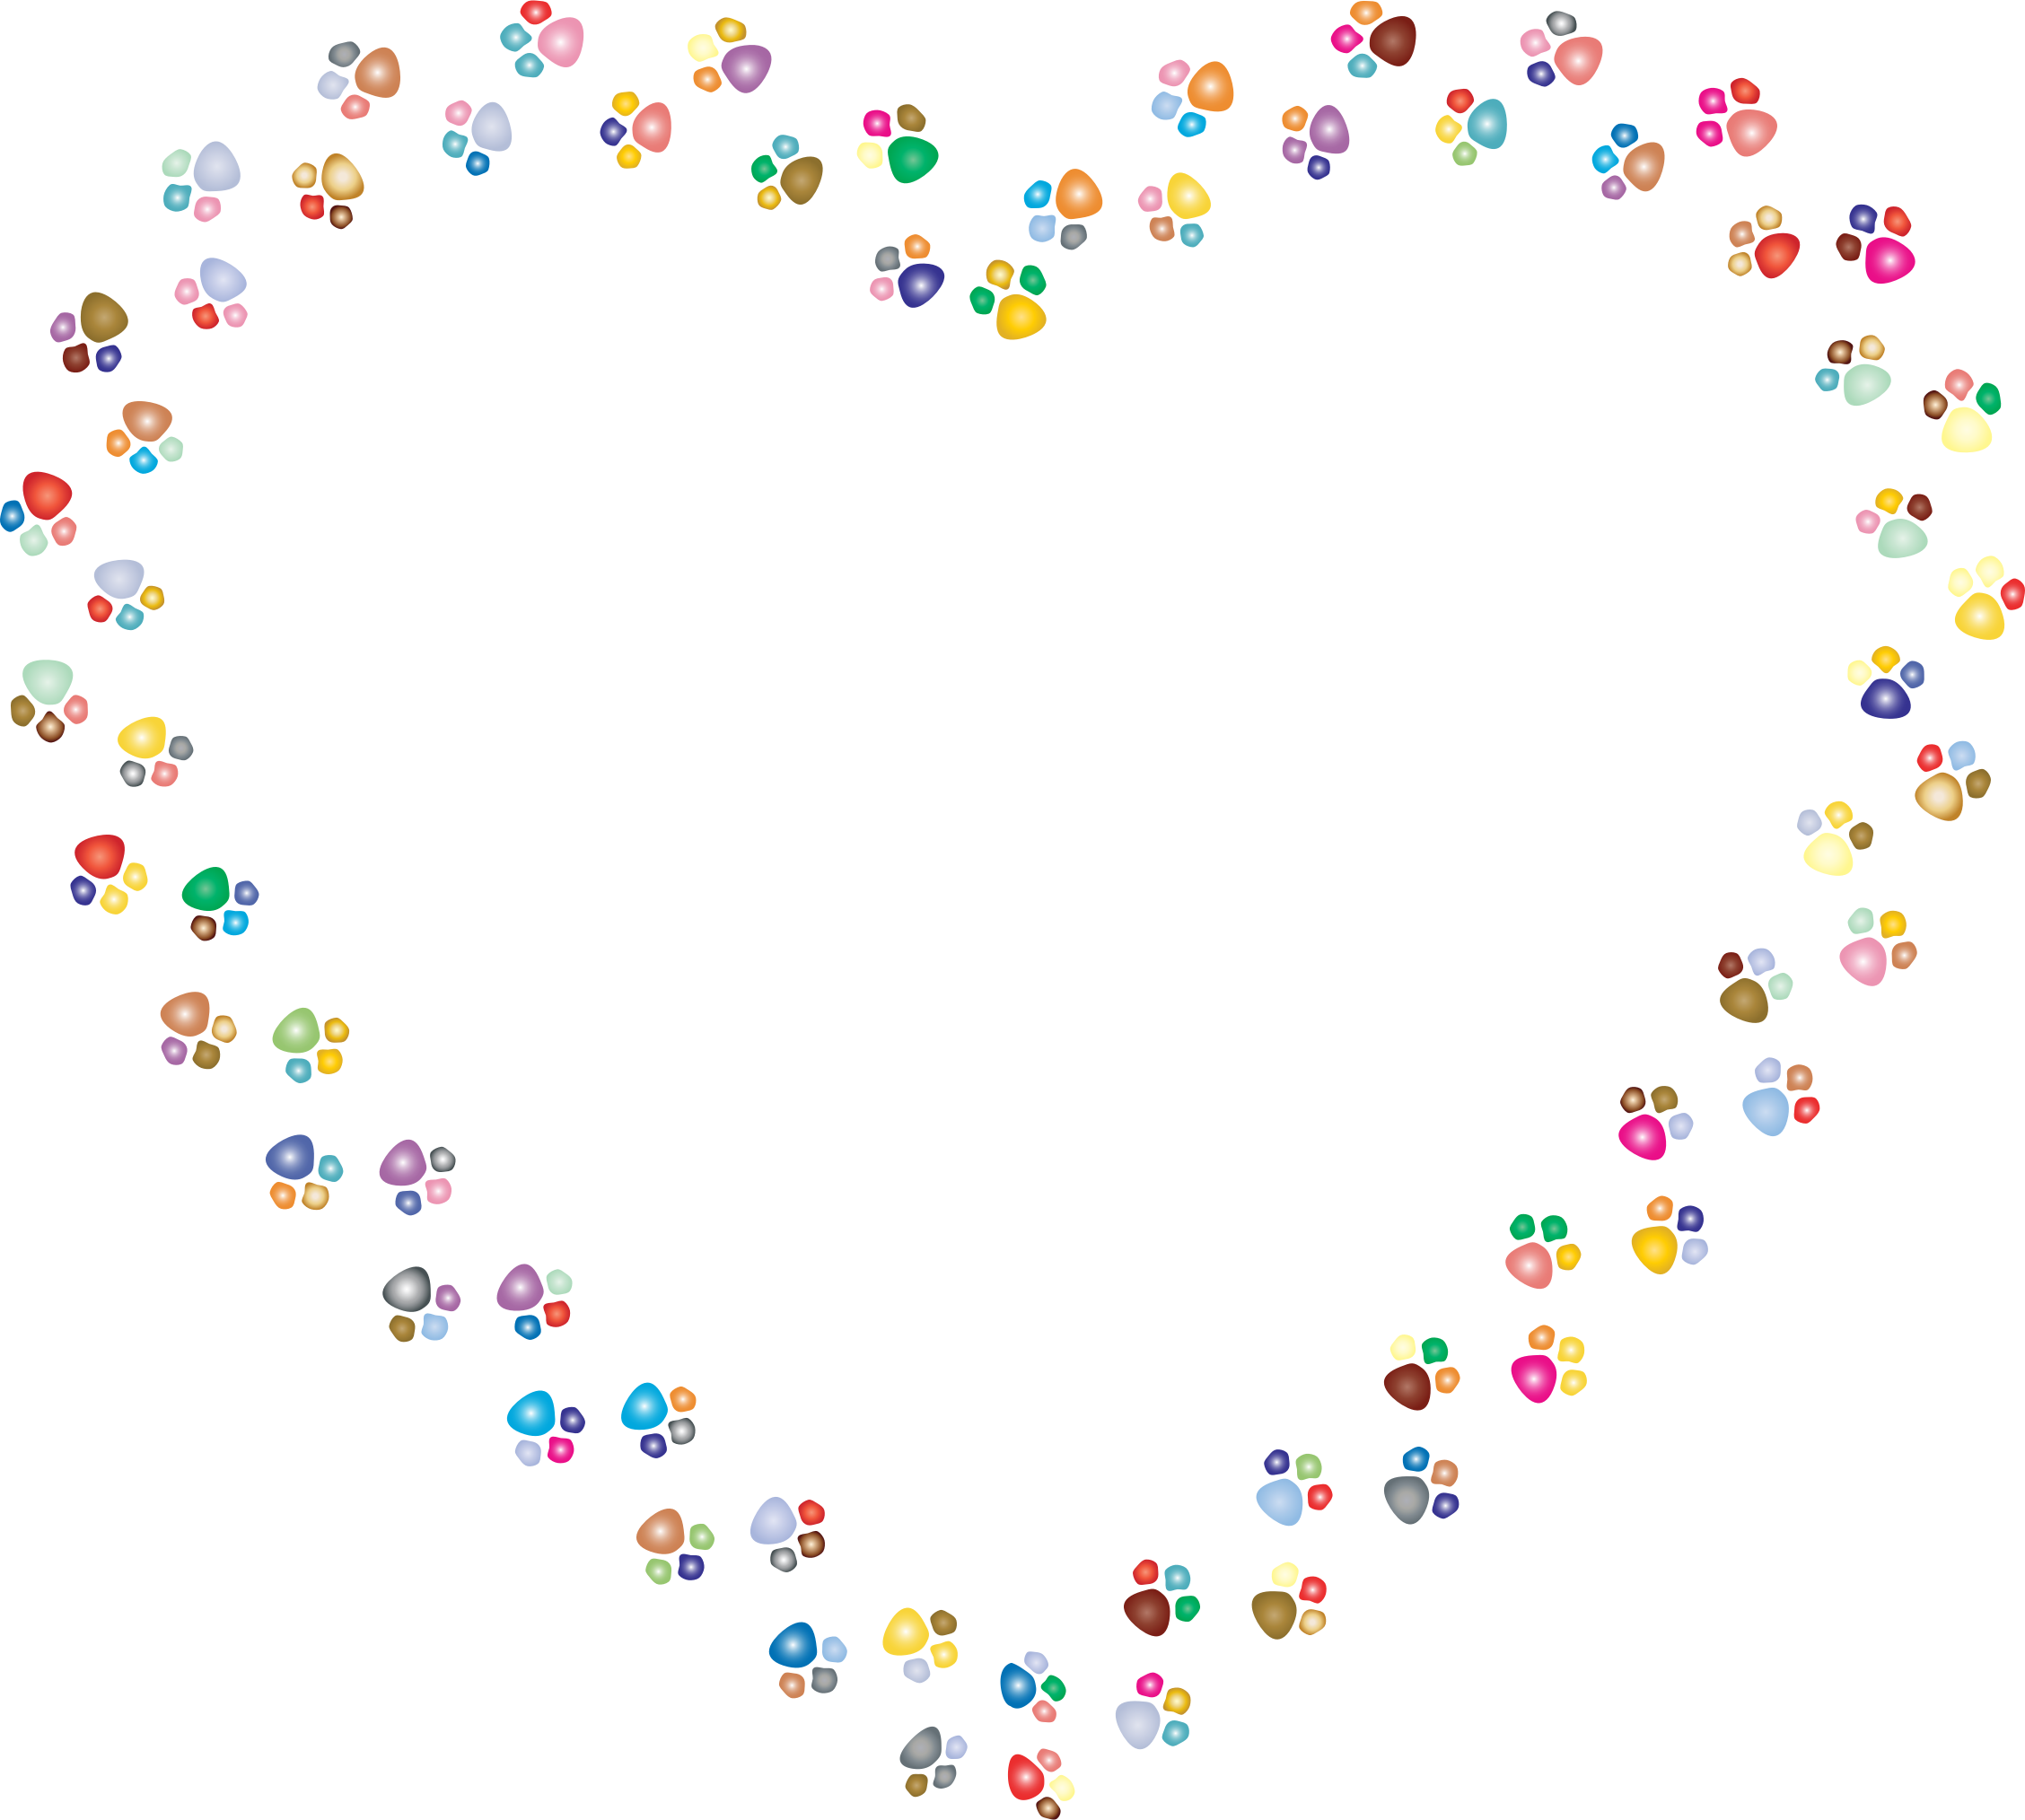 Dog paw heart clipart jpg free download Clipart - Colorful Paw Prints Heart Mark II 2 jpg free download